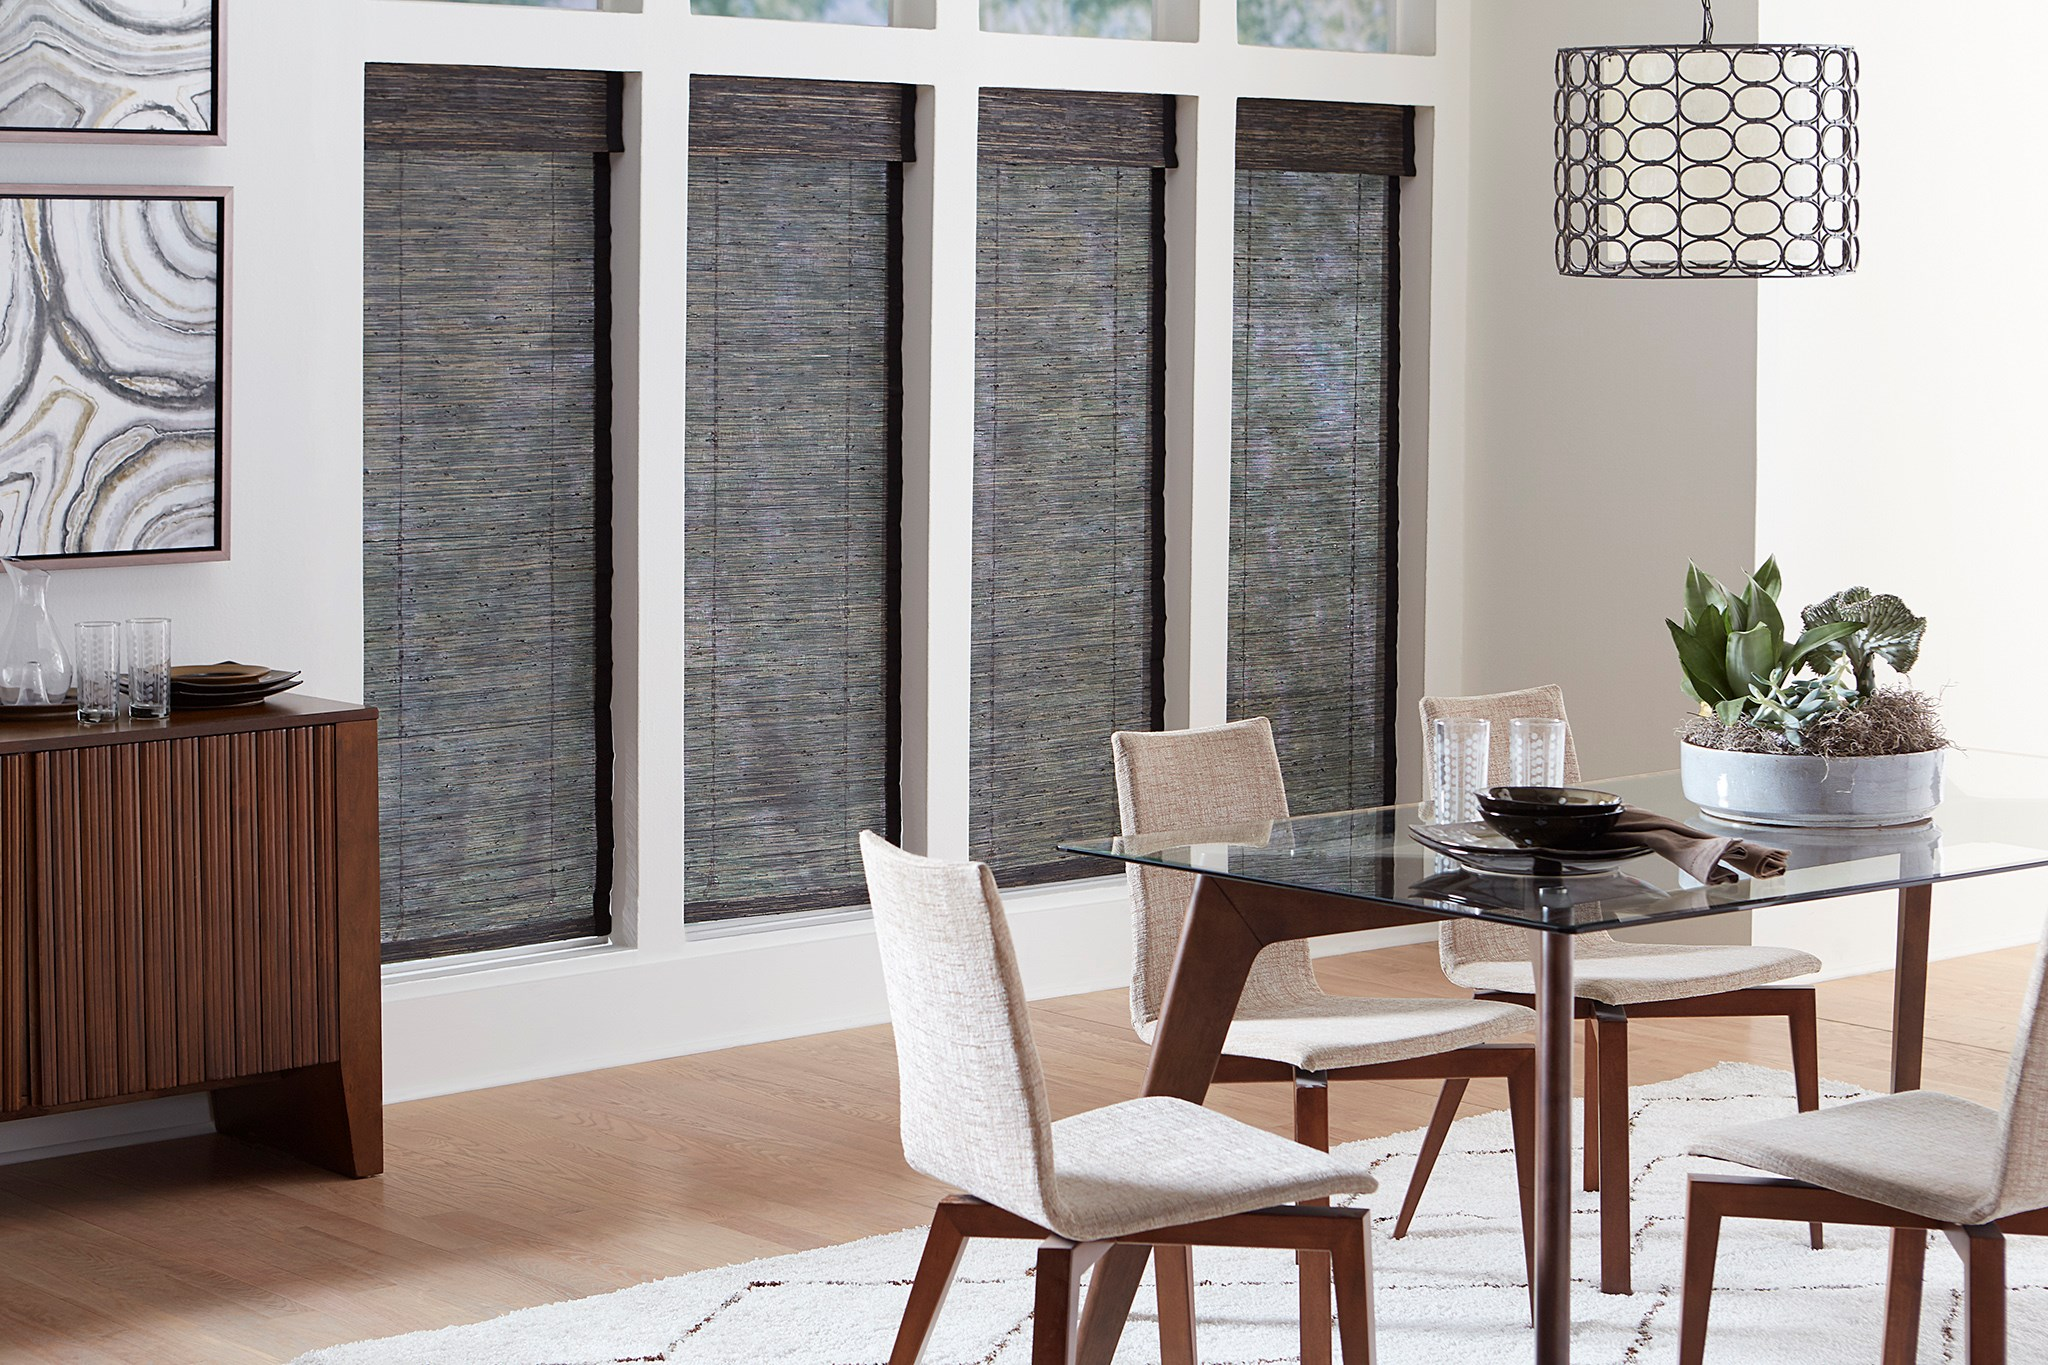 Blinds.com:  Woven Wood Shade